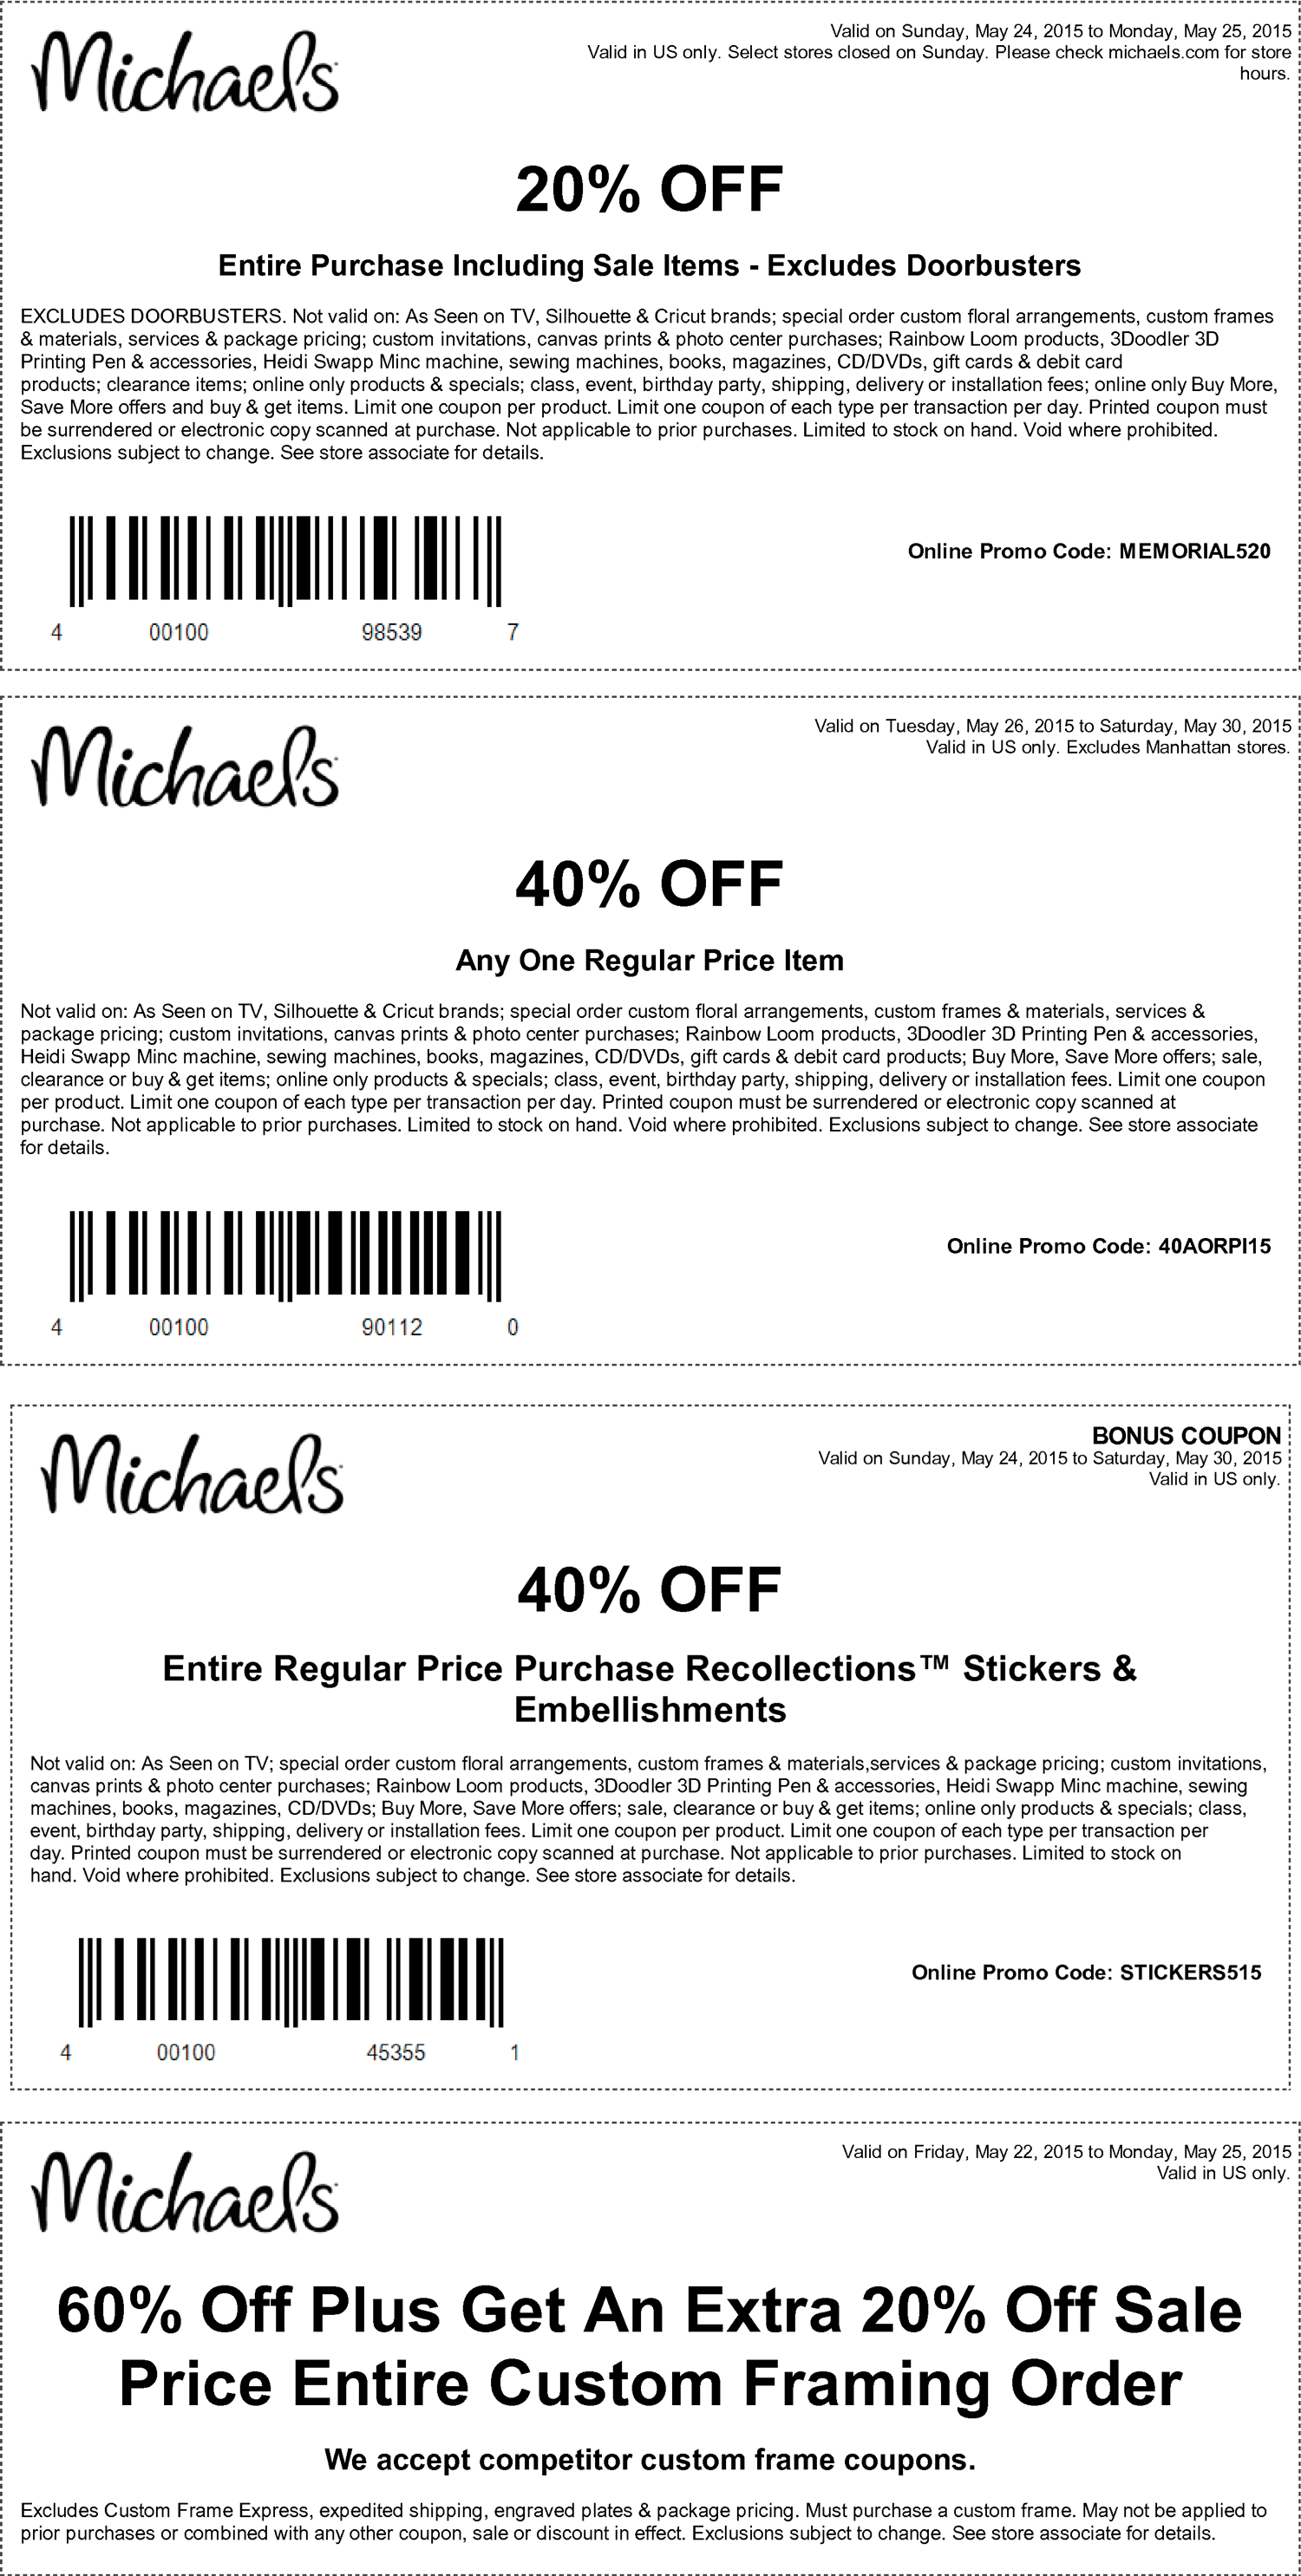 Michaels Coupon February 2017 20% off everything, 40% off a single item at Michaels, or online via promo code 40AORPI15